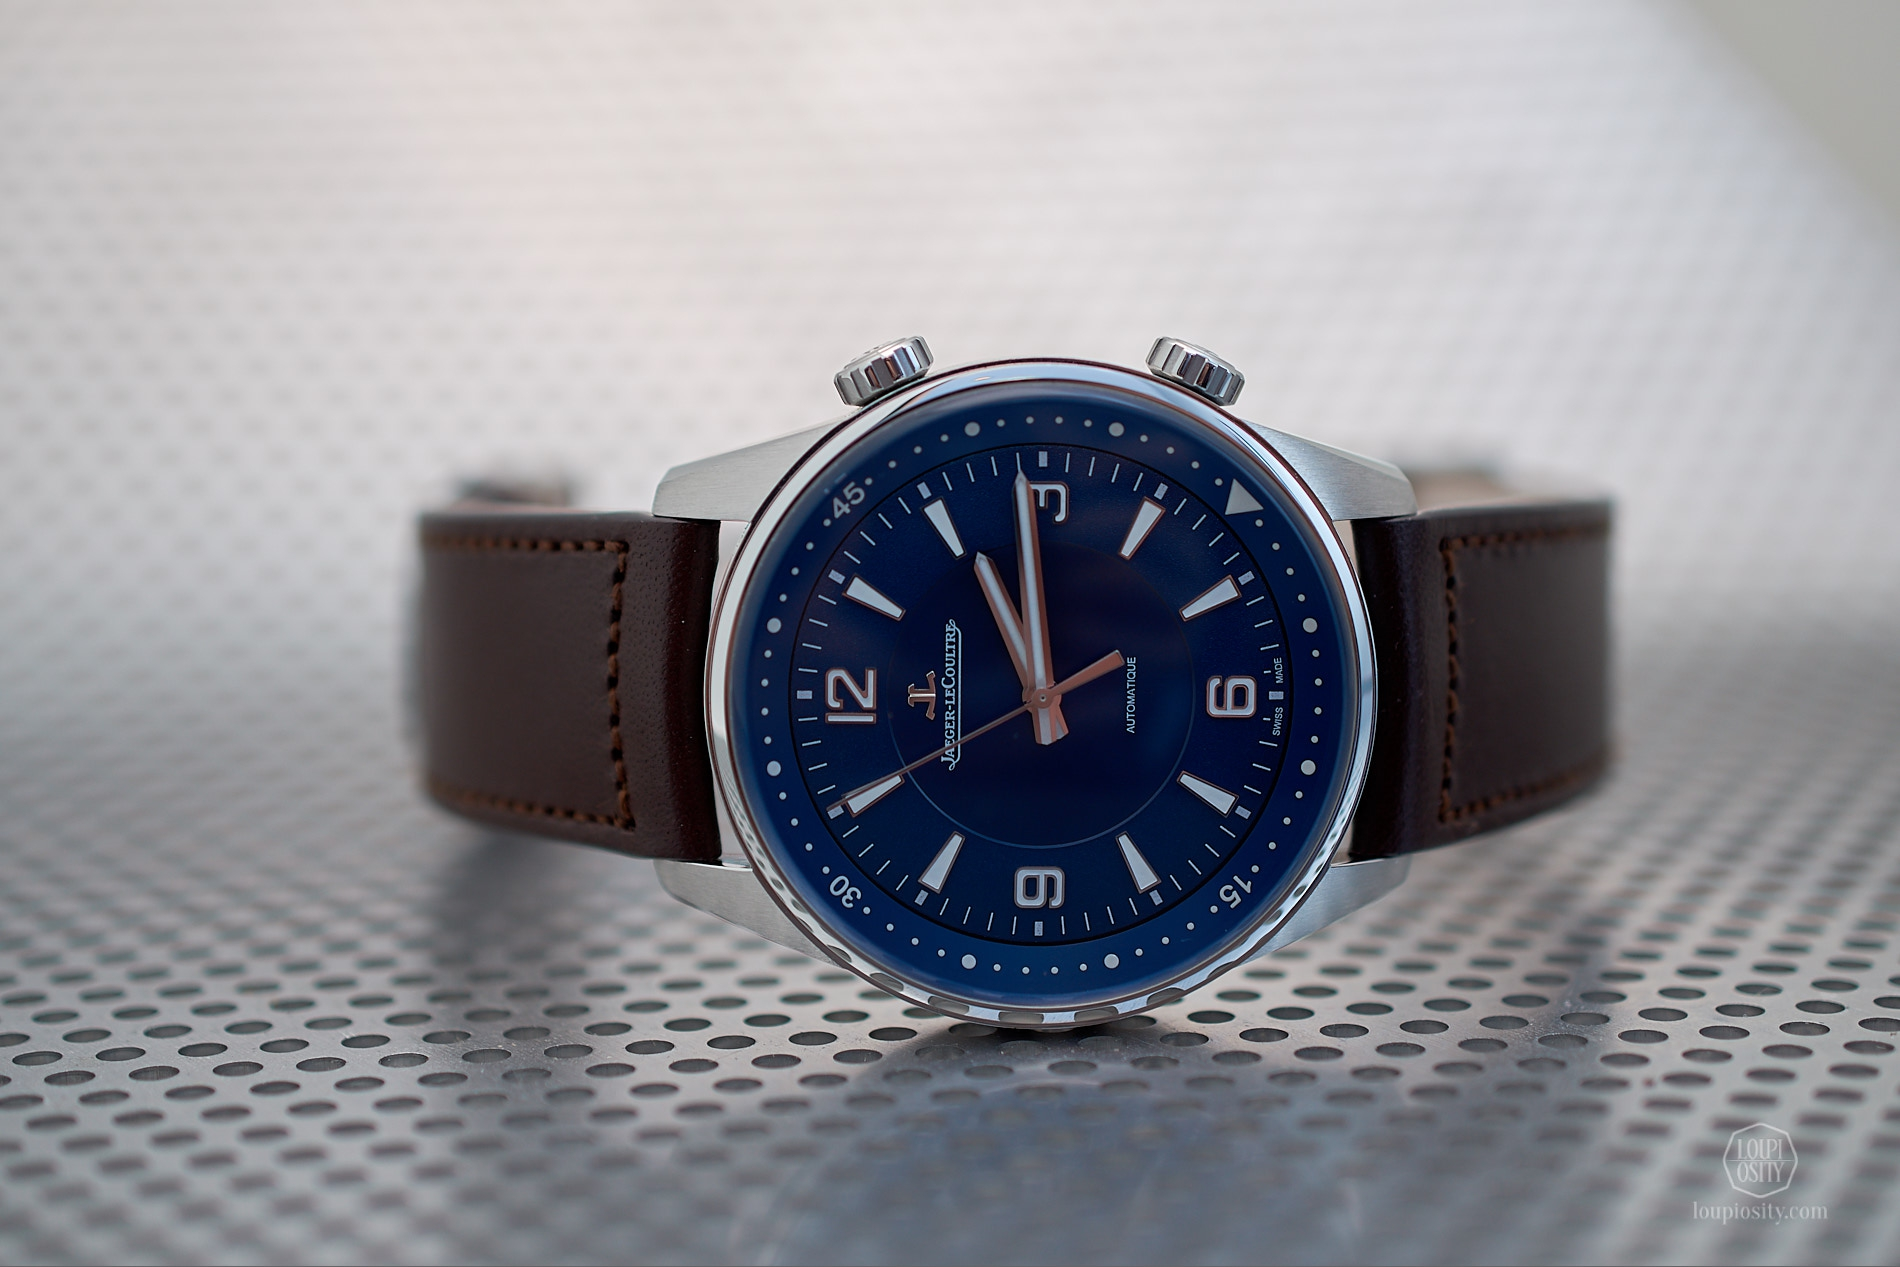 Jaeger-LeCoultre Polaris Automatic - Blue